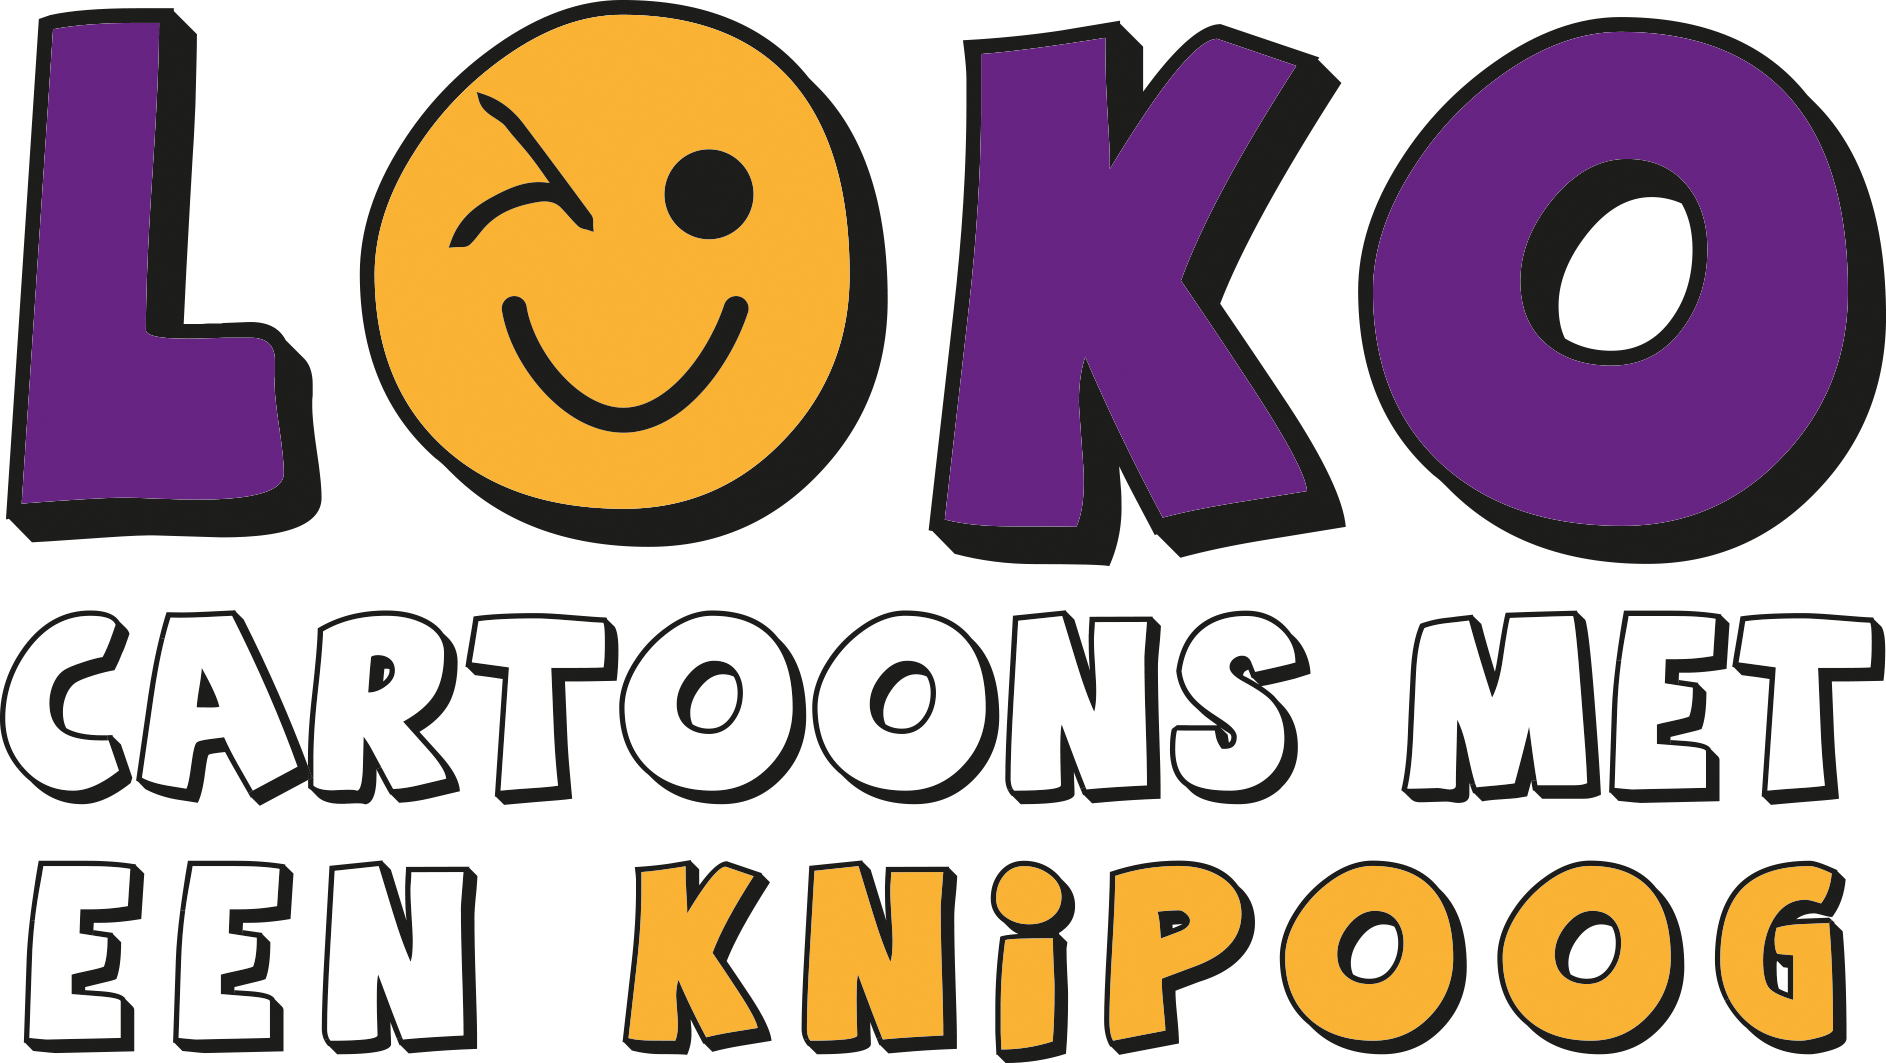 Loko Cartoons Logo